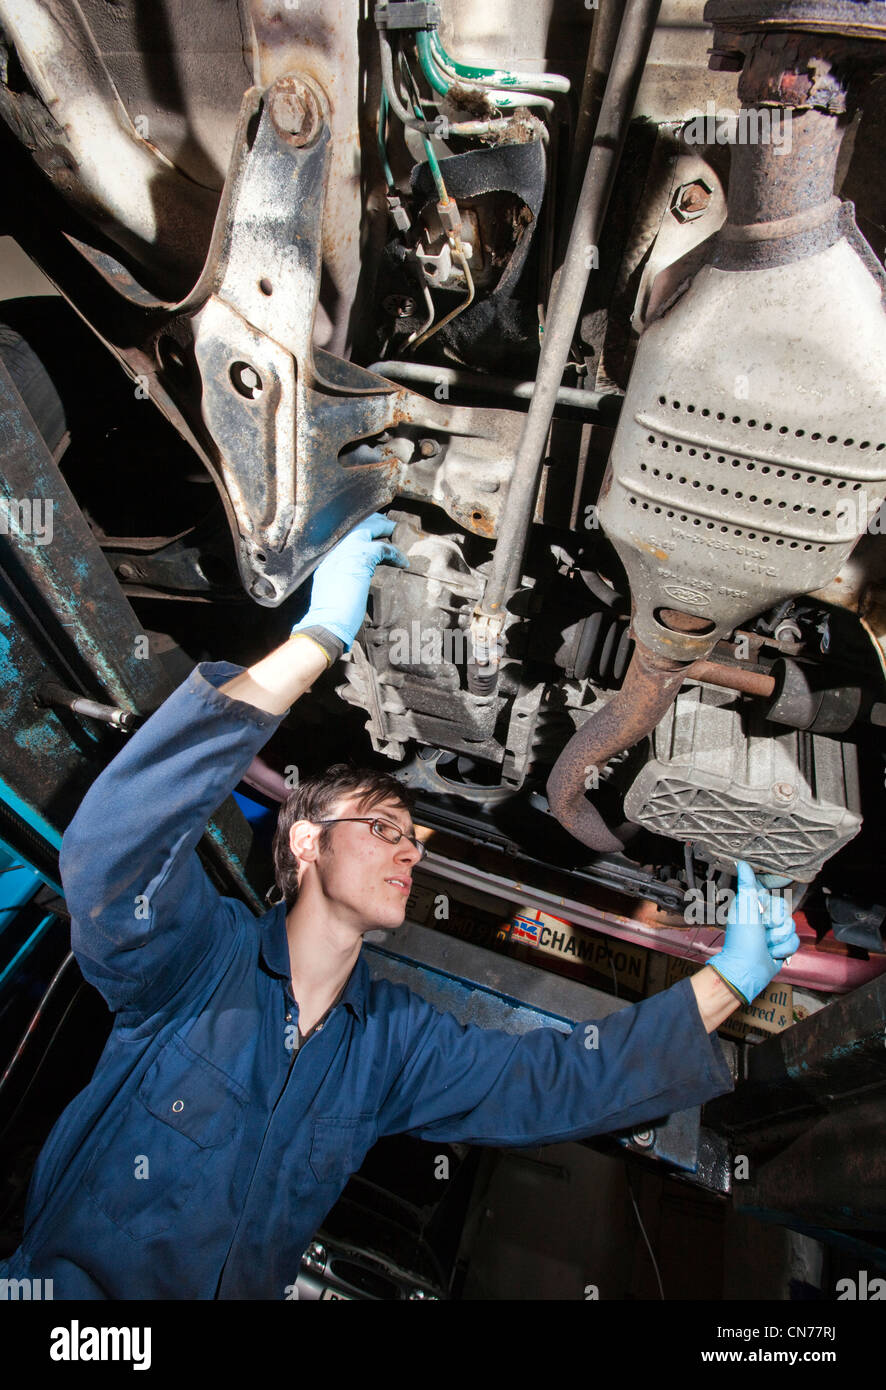 A young motor vehicle mechanic in his early twenties working underneath a car. - Stock Image